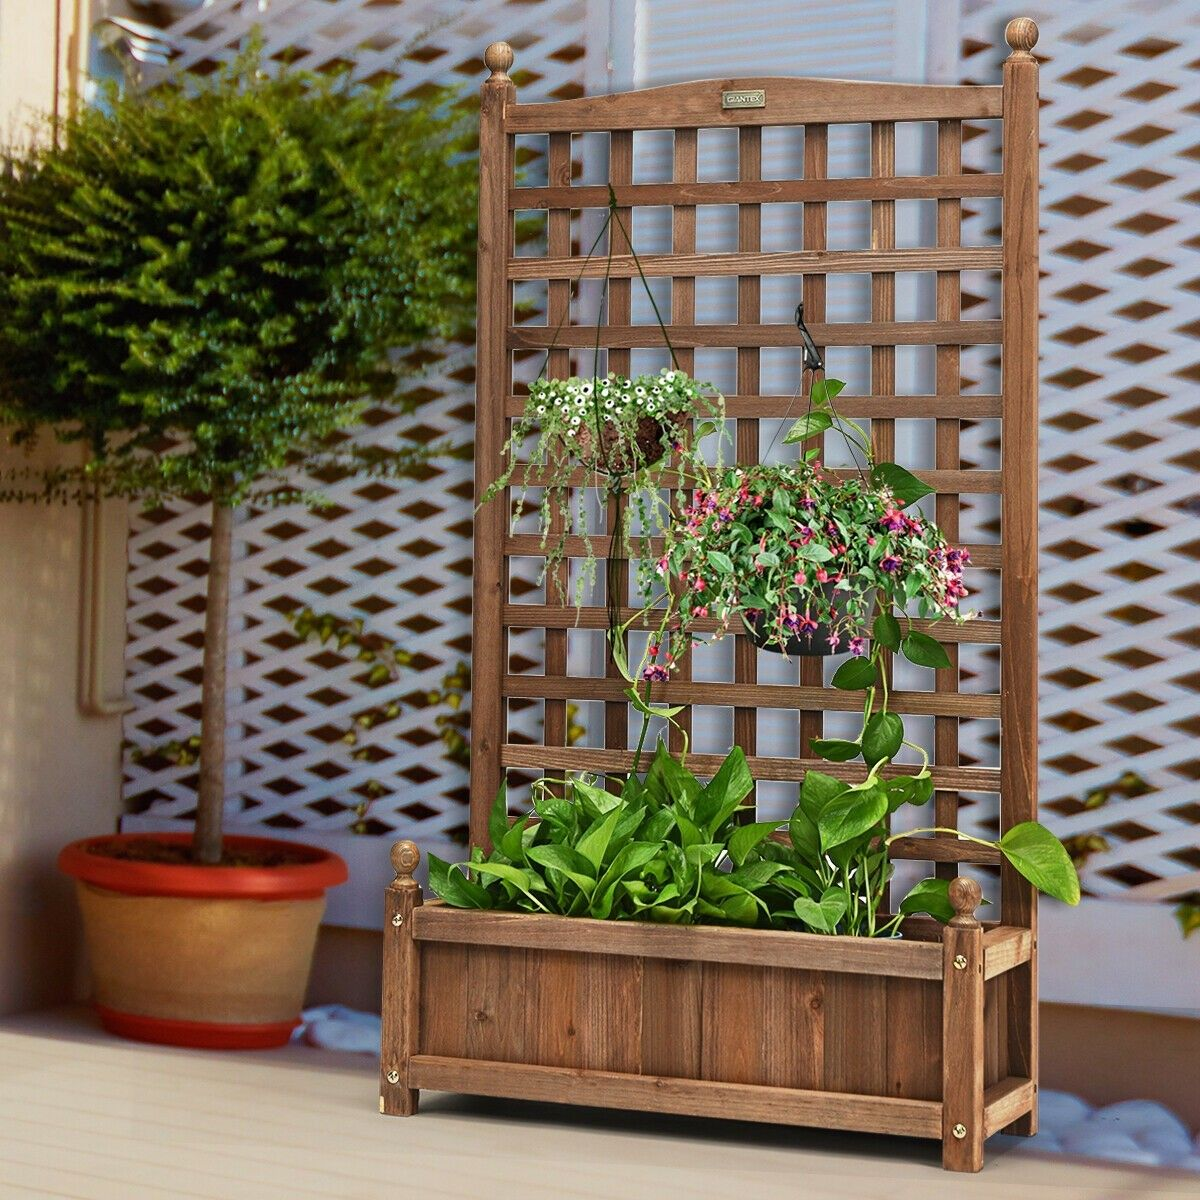 Solid Wood Planter Box With Trellis Weather Resistant Outdoor Planter Box With Trellis Wood Planter Box Wood Planters